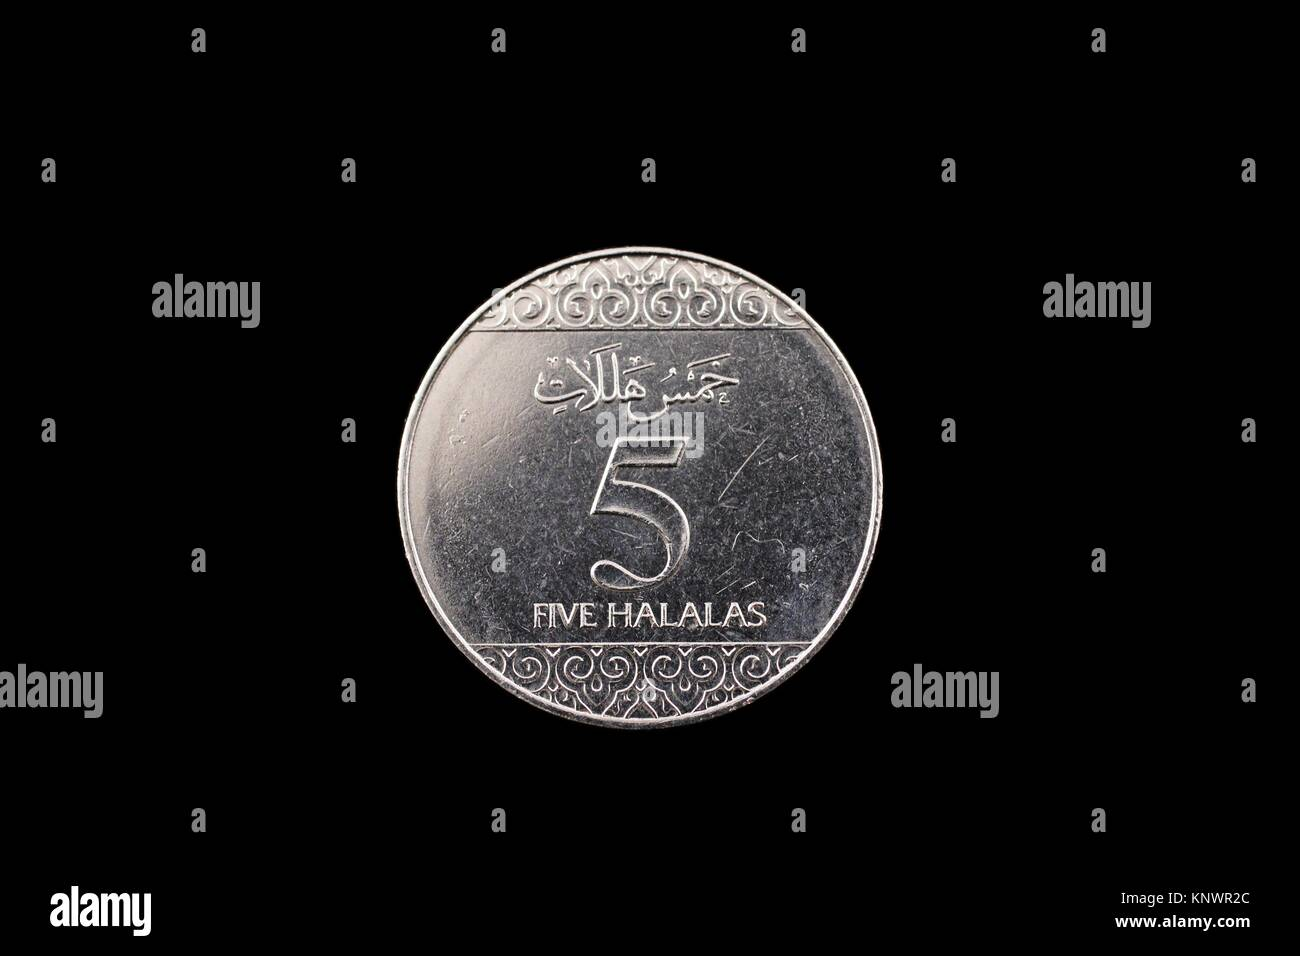 A super macro image of a Saudi Arabian 5 halalas coin isolated on a black background - Stock Image